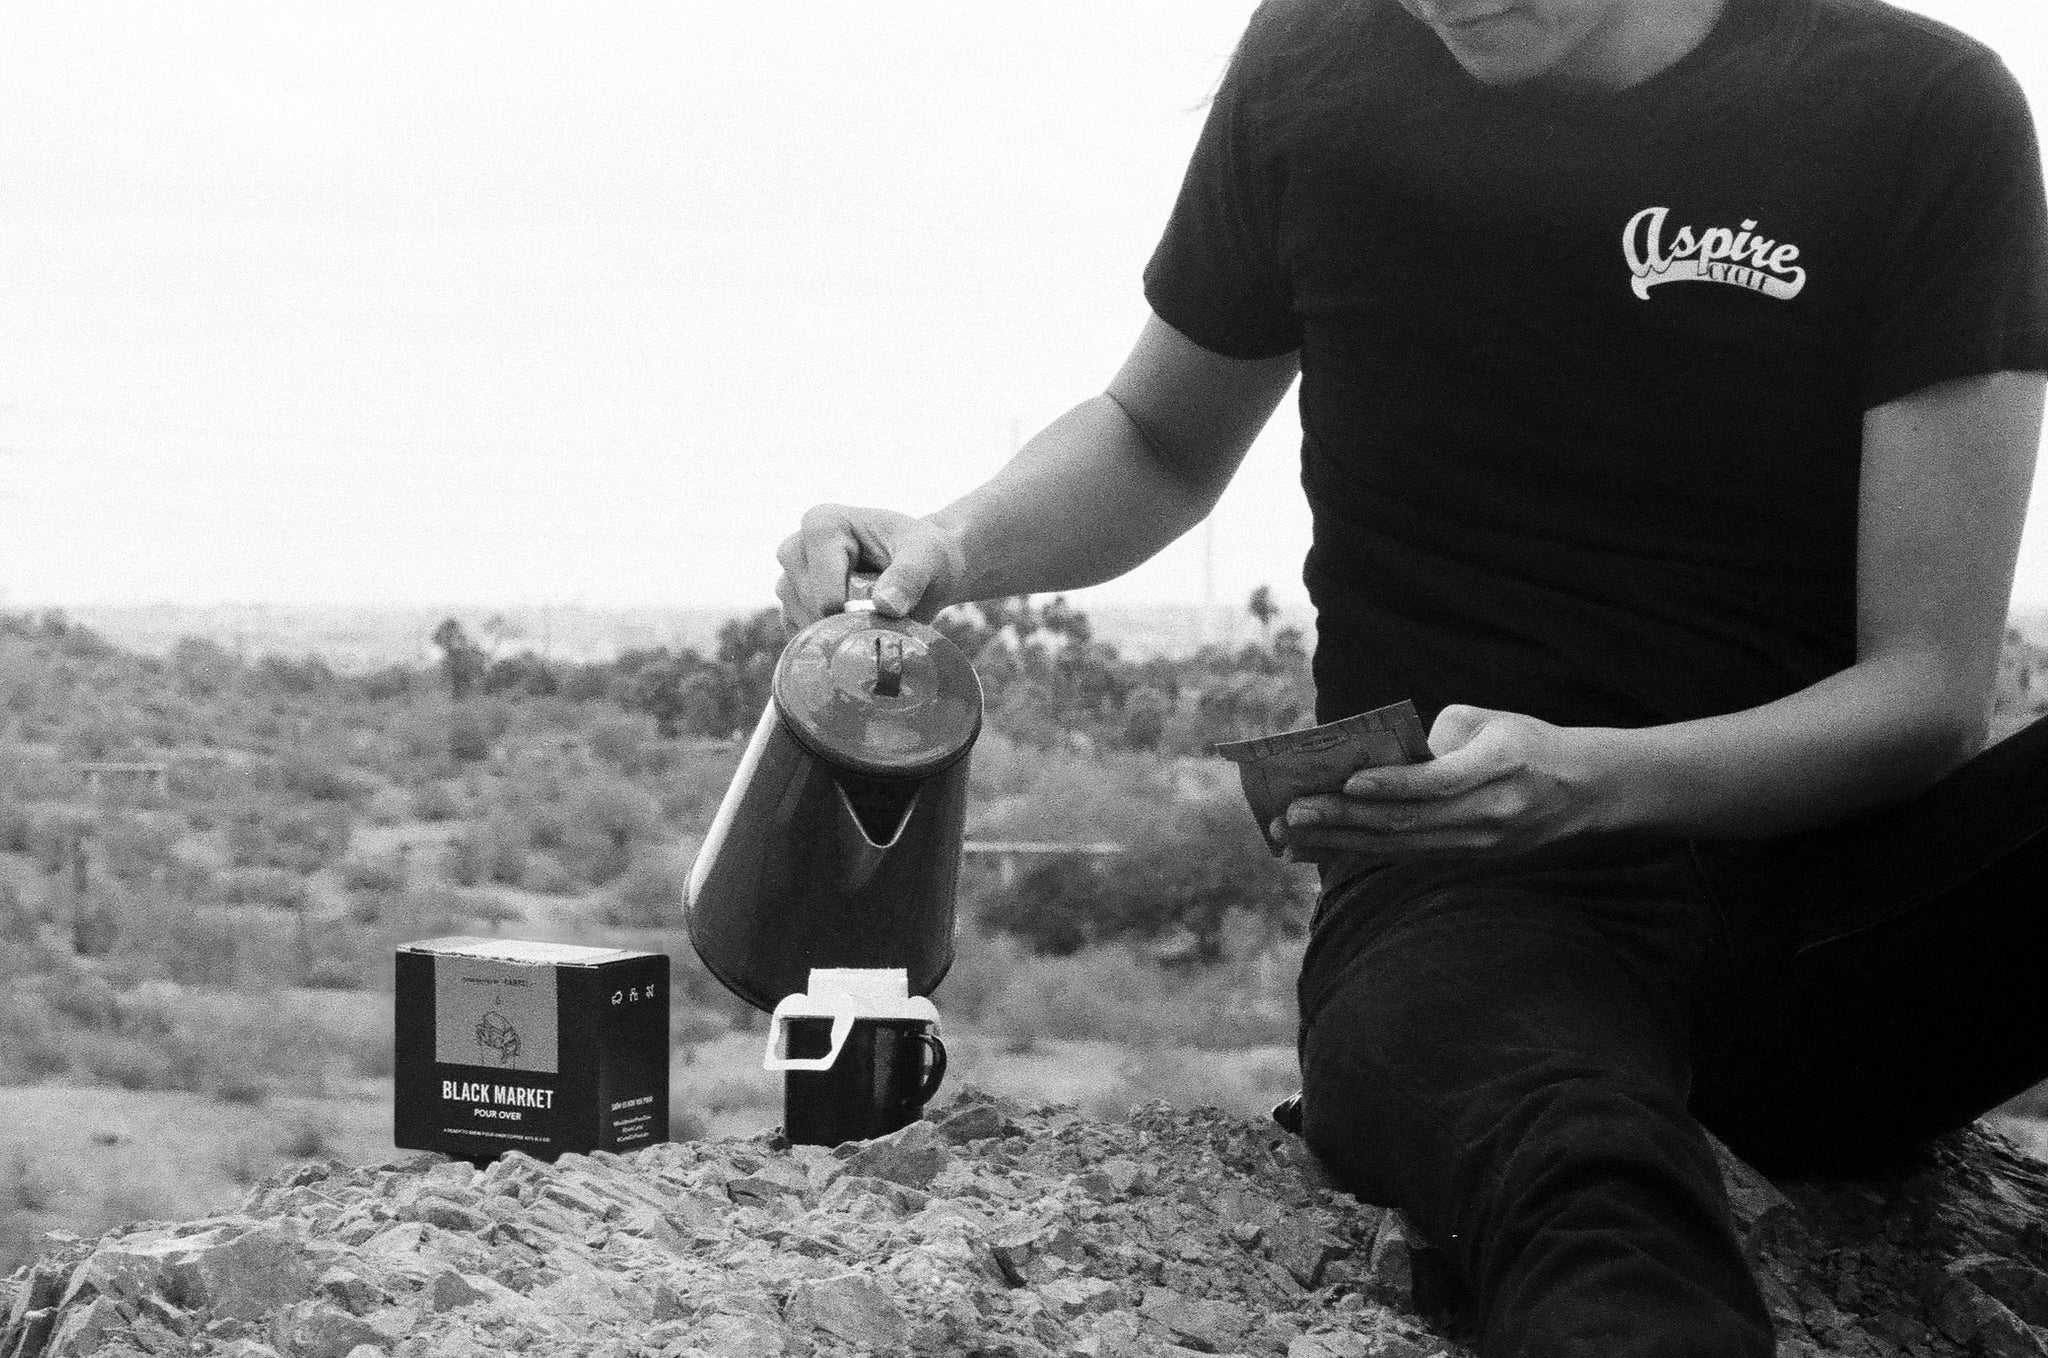 Brewing Black Market Pour Over Kit at Papago Park.